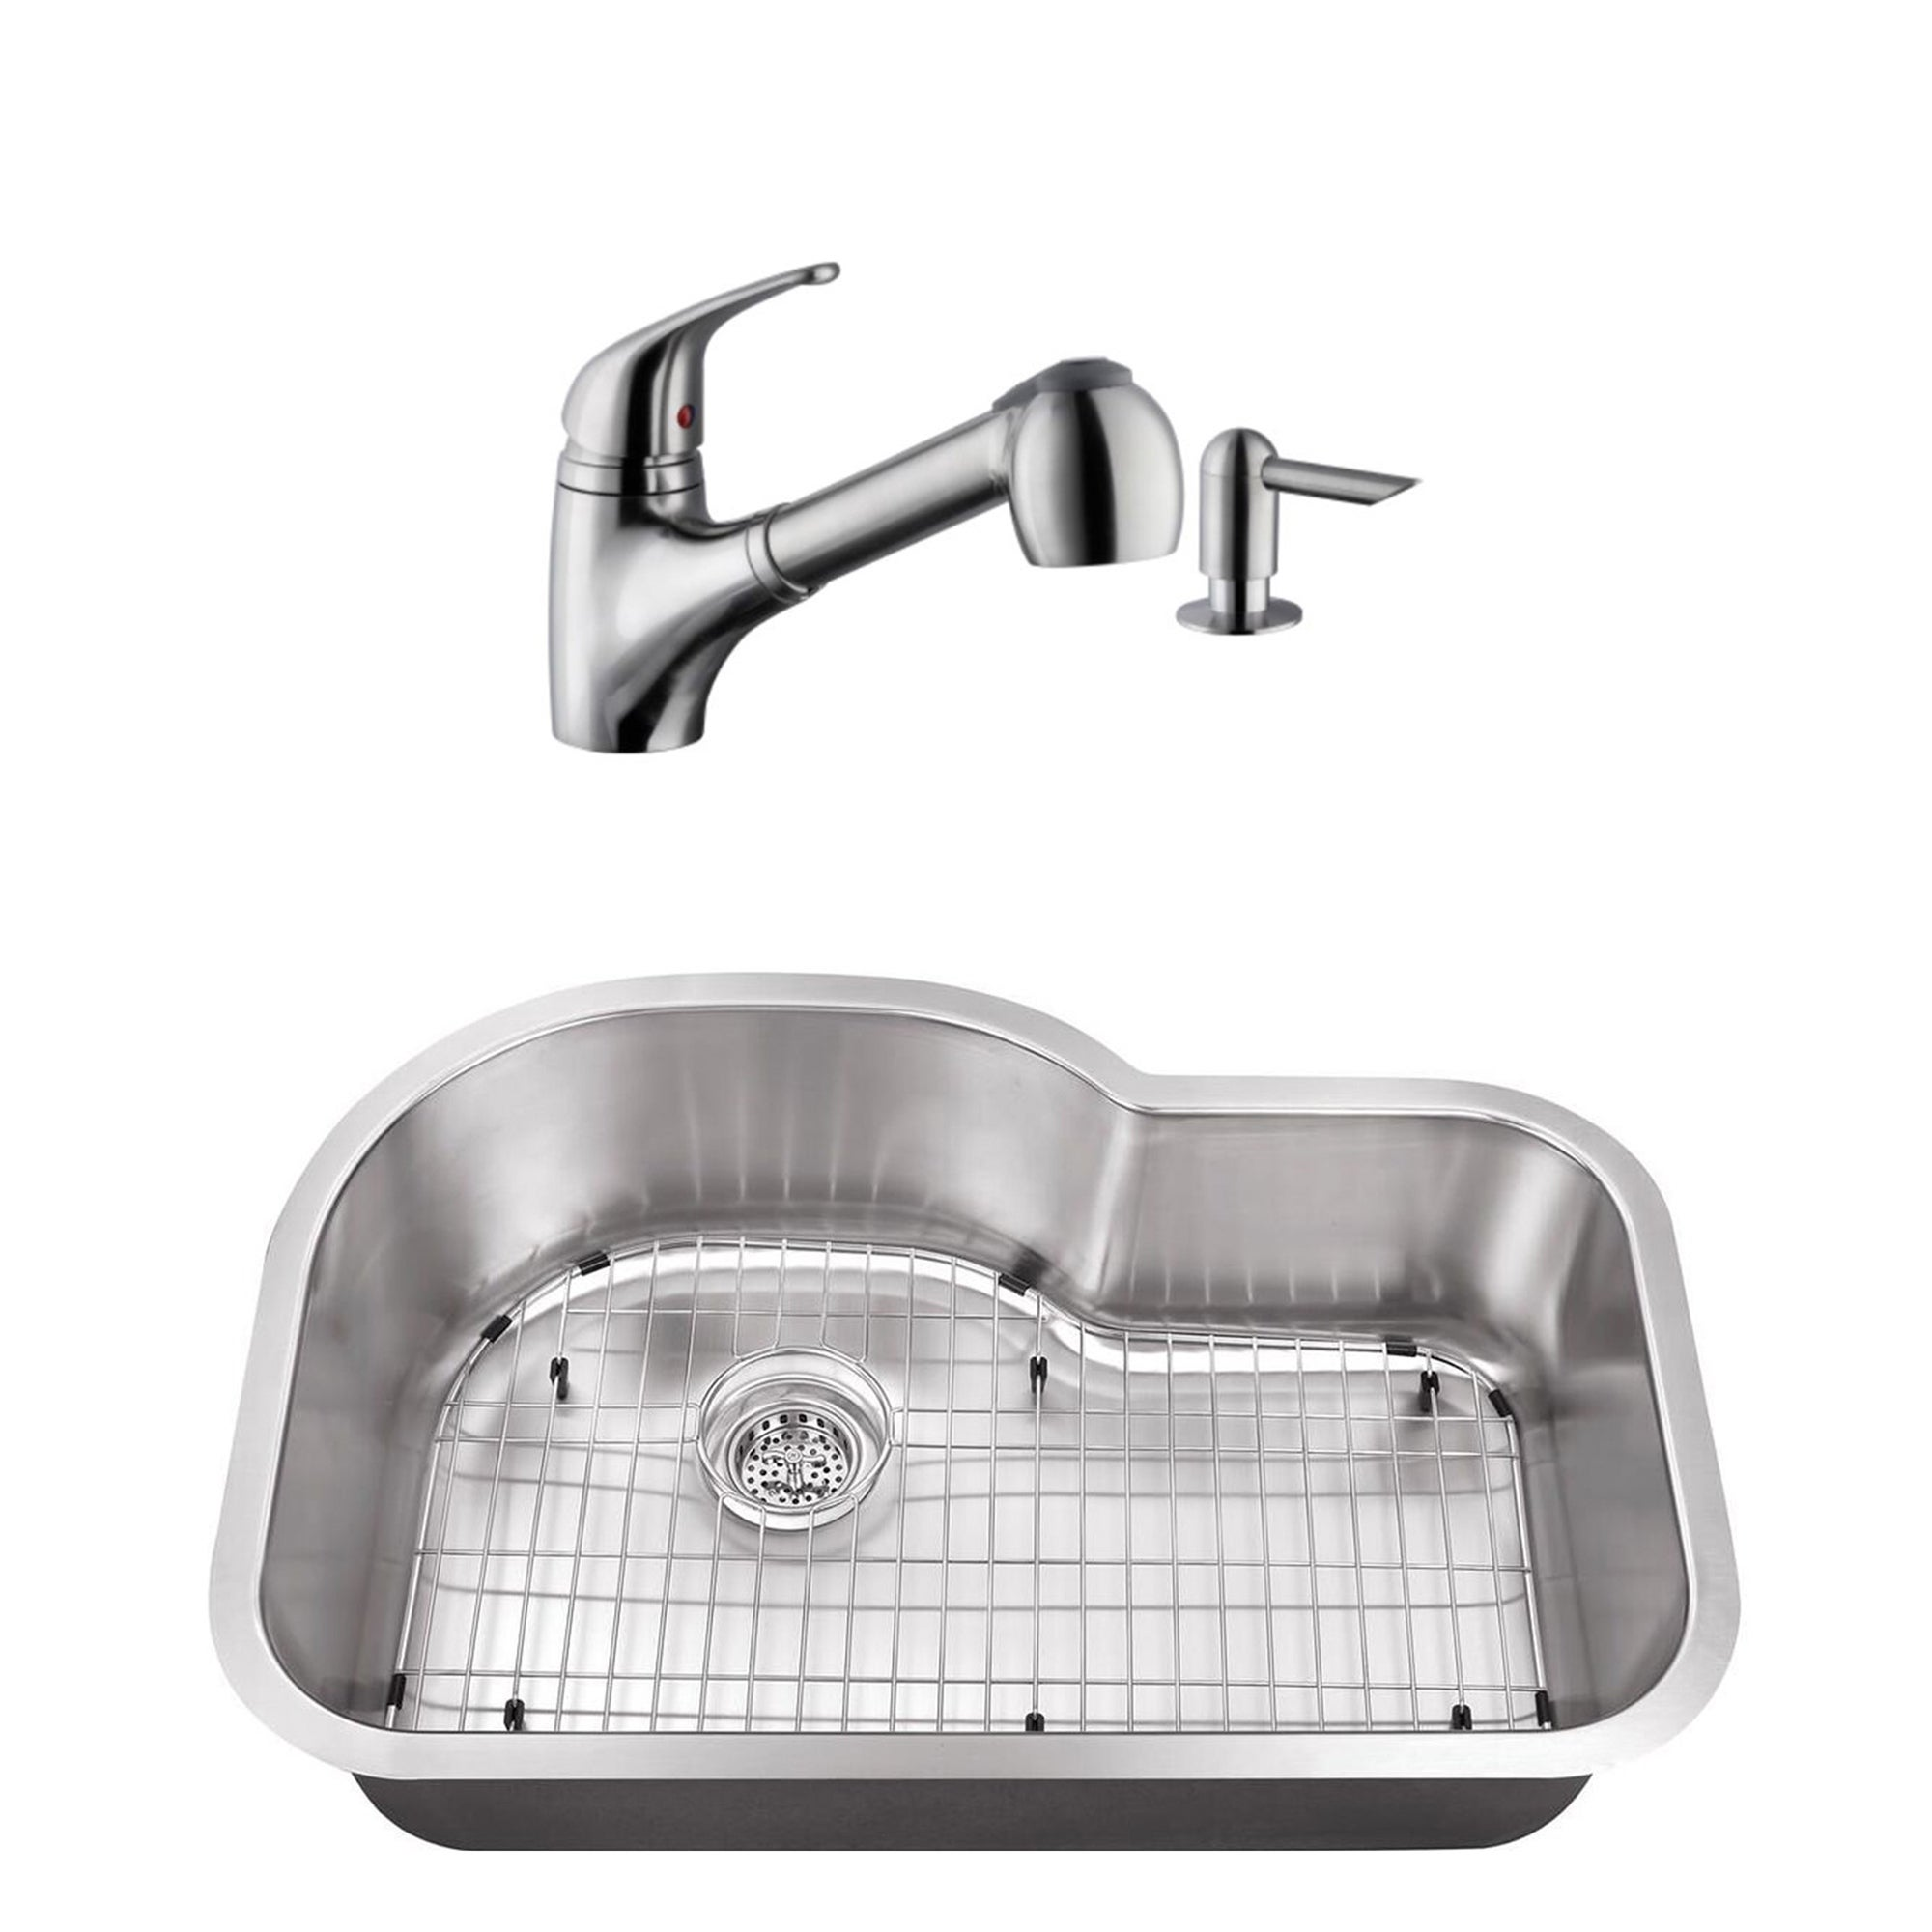 Eurostyle Stainless Steel Kitchen Sink Low Profile Faucet